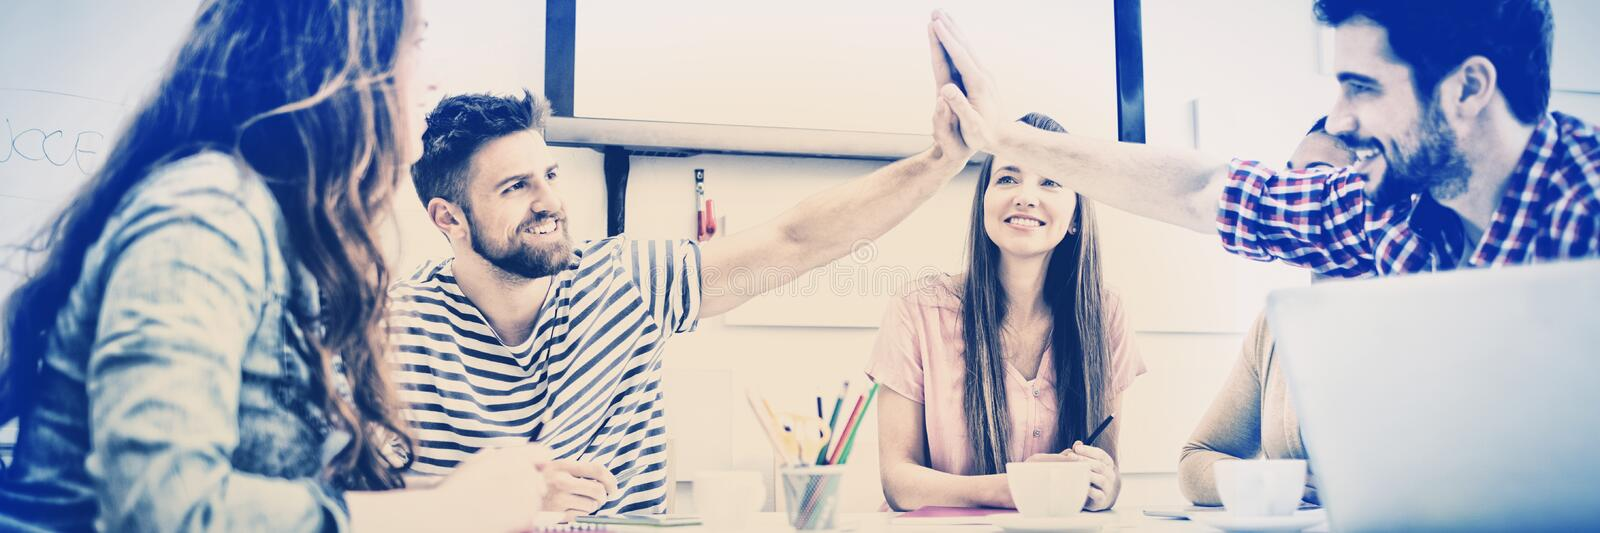 Male colleagues giving high-five in meeting at creative office stock photo